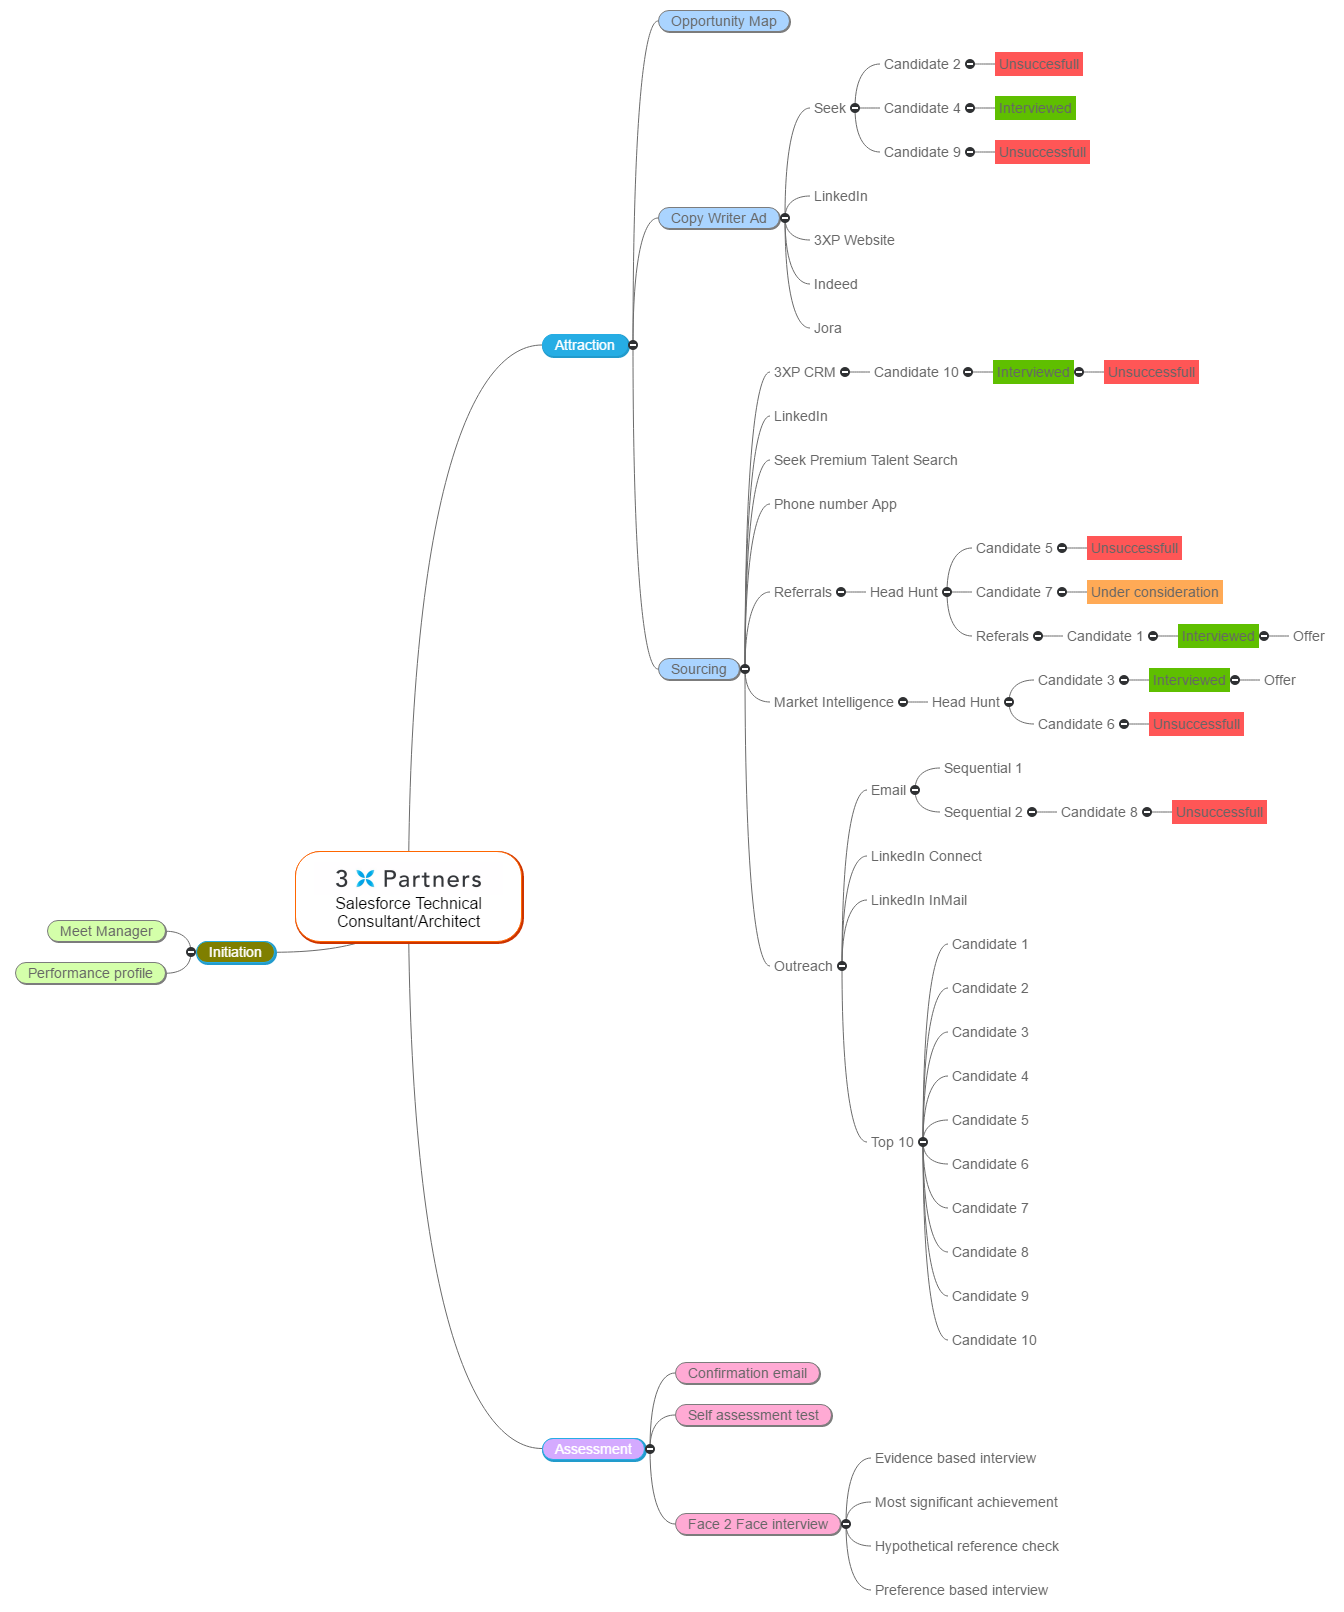 Sample - Salesforce Technical Consultant - Architect Mind Map